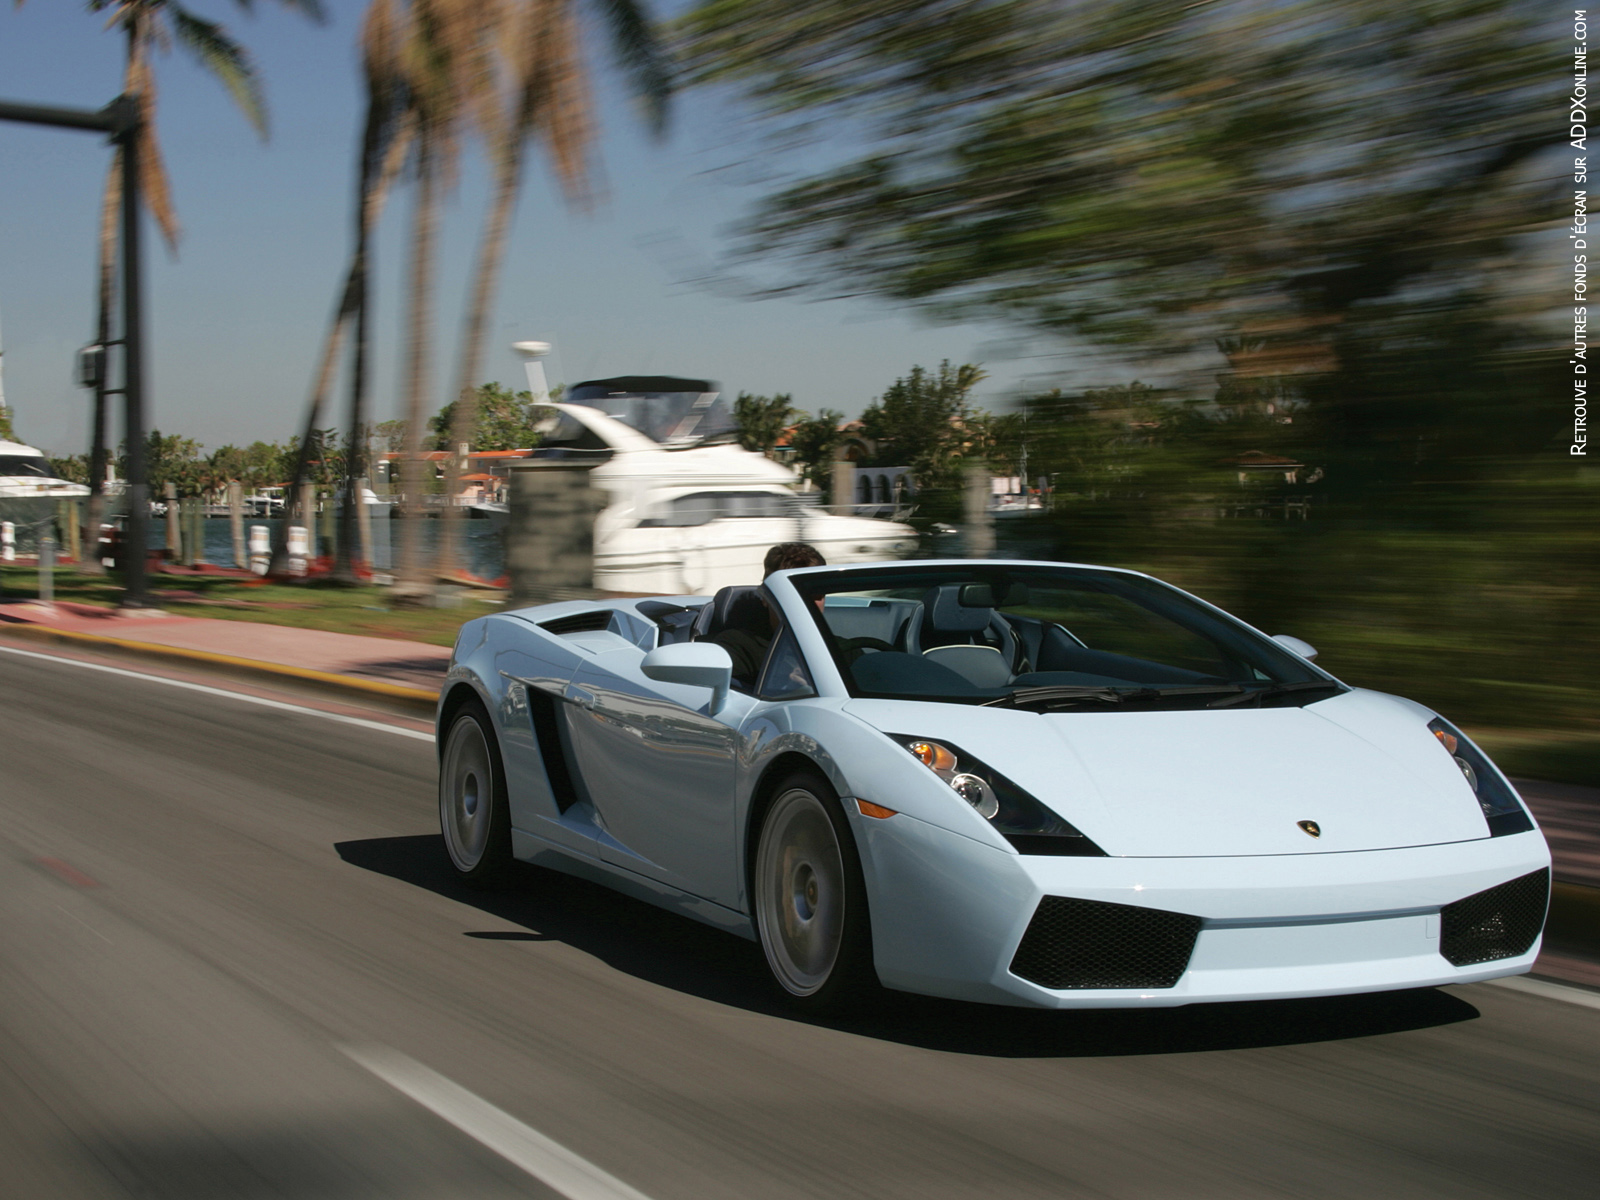 Lamborghini Cars Wallpapers | CARS WALLPAPERS COLLECTIONS